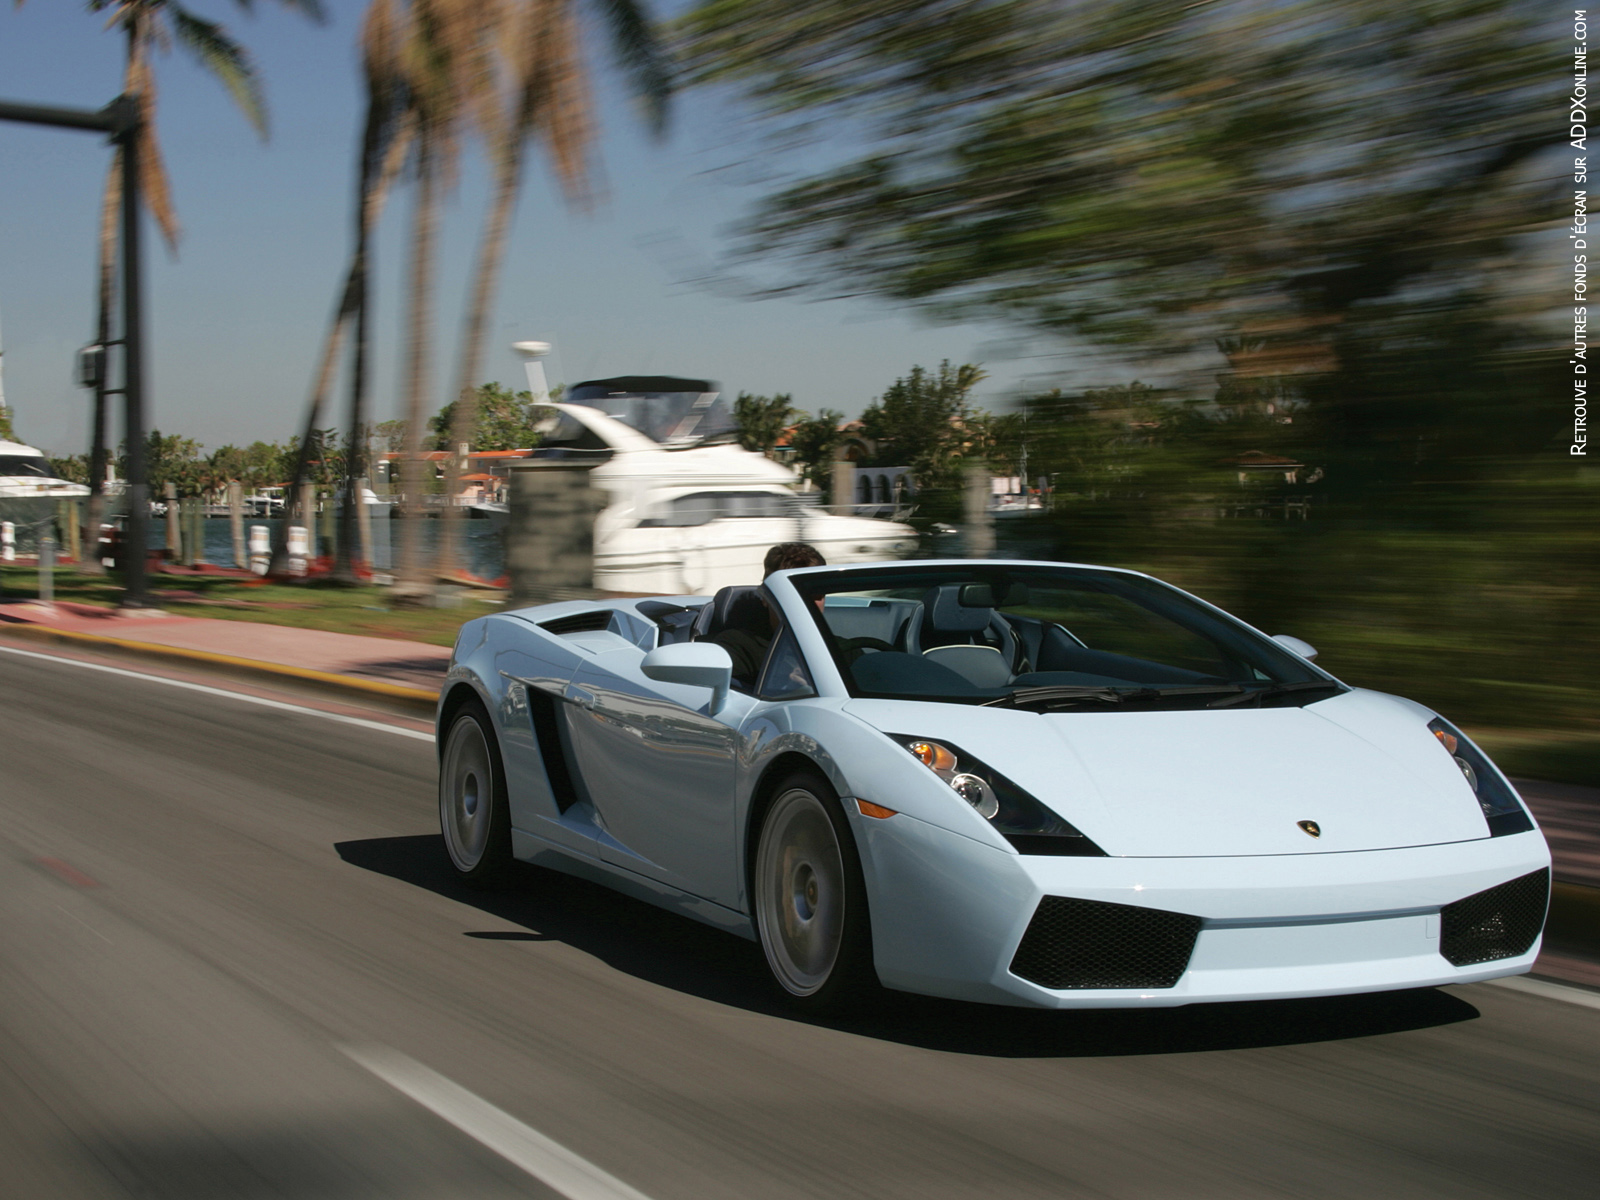 Lamborghini Cars Wallpapers | CARS WALLPAPERS COLLECTIONS